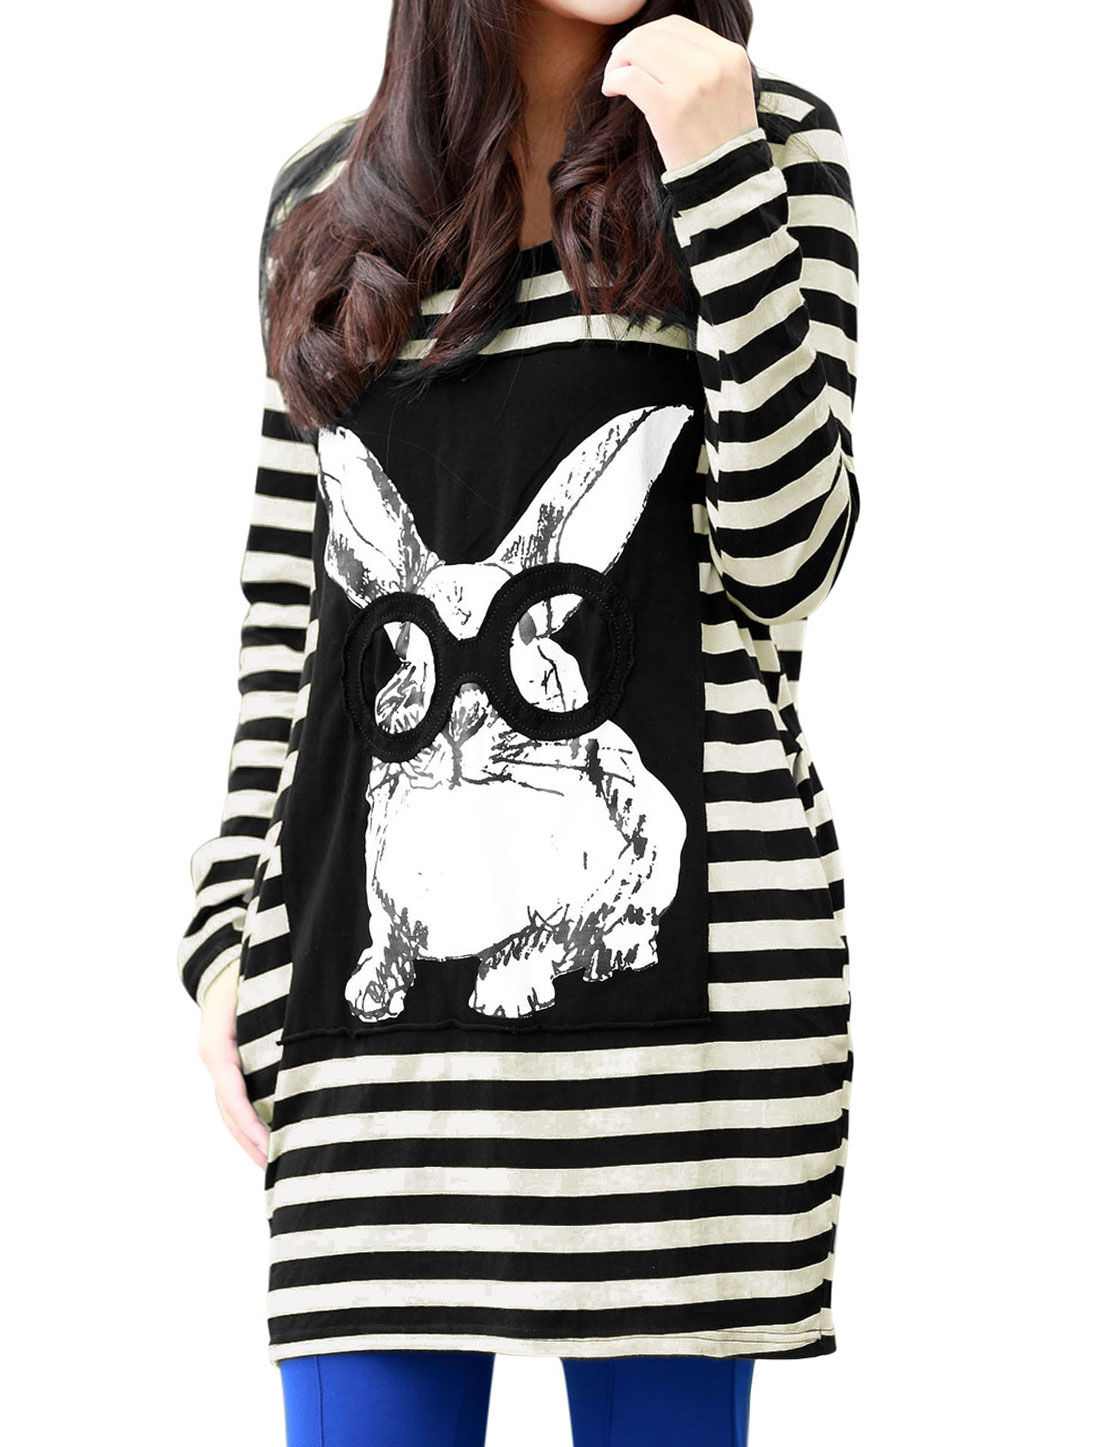 Maternity Round Neck Stripes Rabbit Printed Stretchy Top Shirt Black Beige L